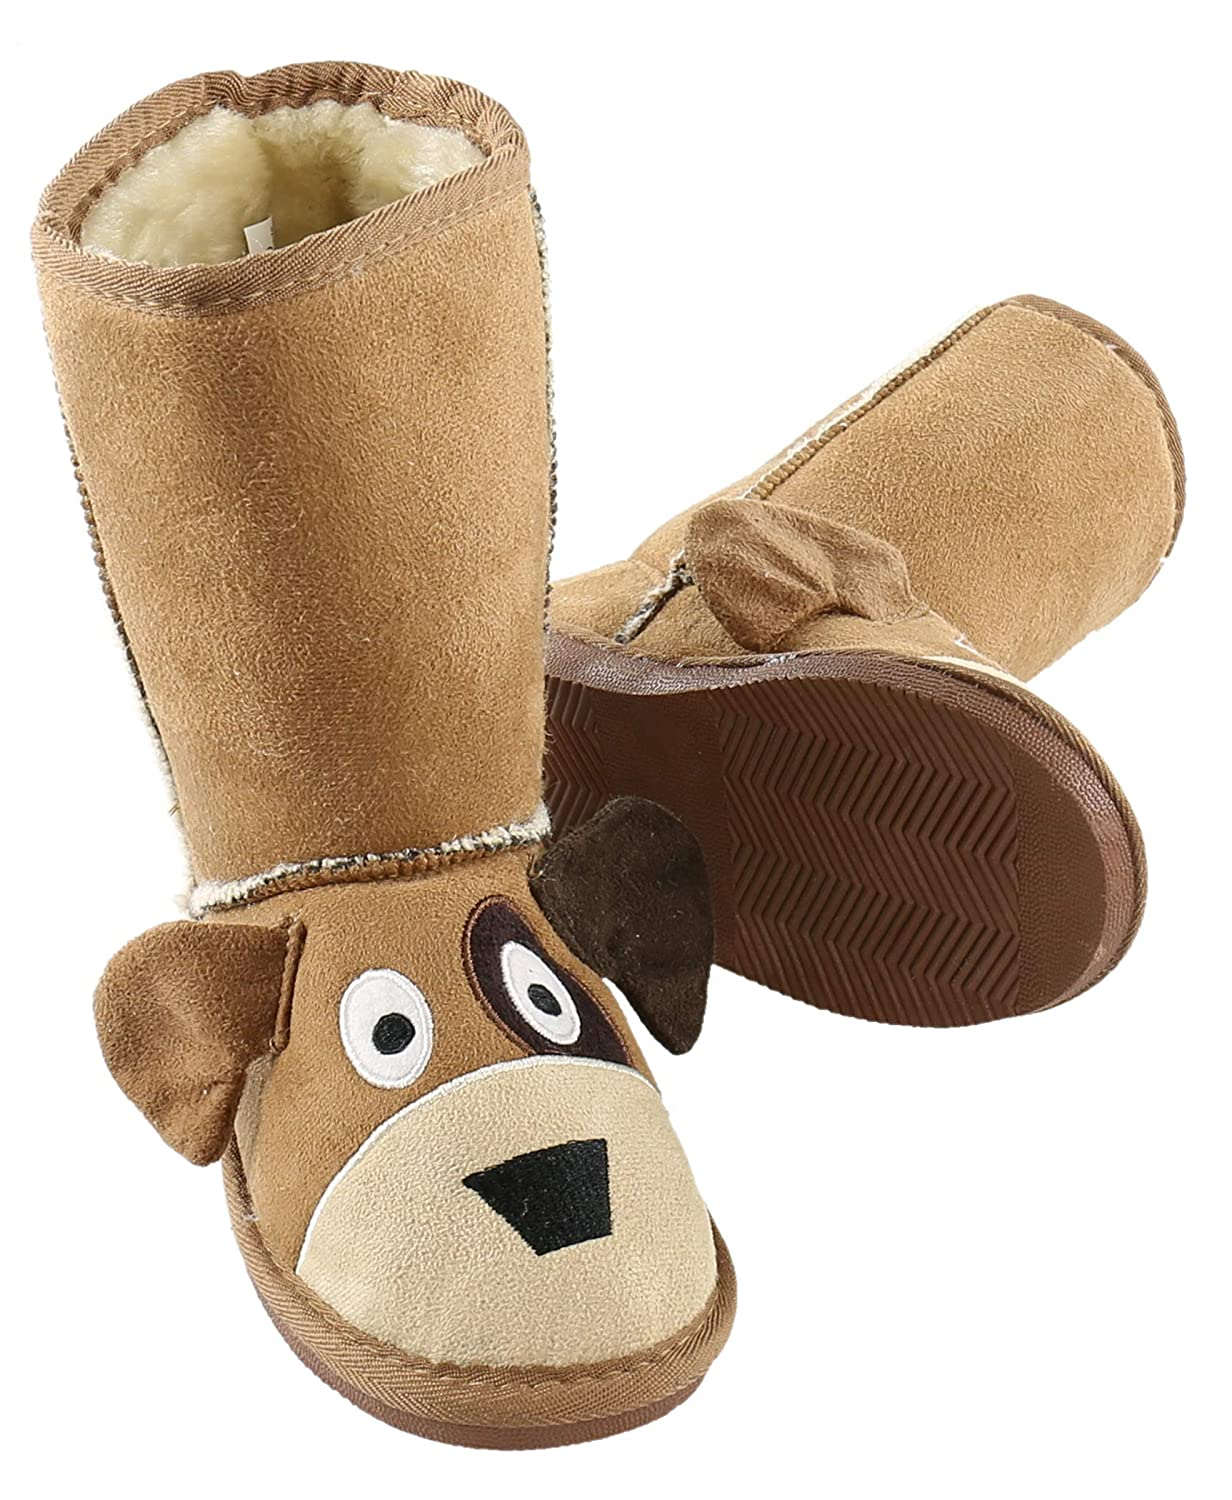 Boot Cute Animal Character Slippers for Kids by LazyOne | Boys and Girls Creature Slipper Boots